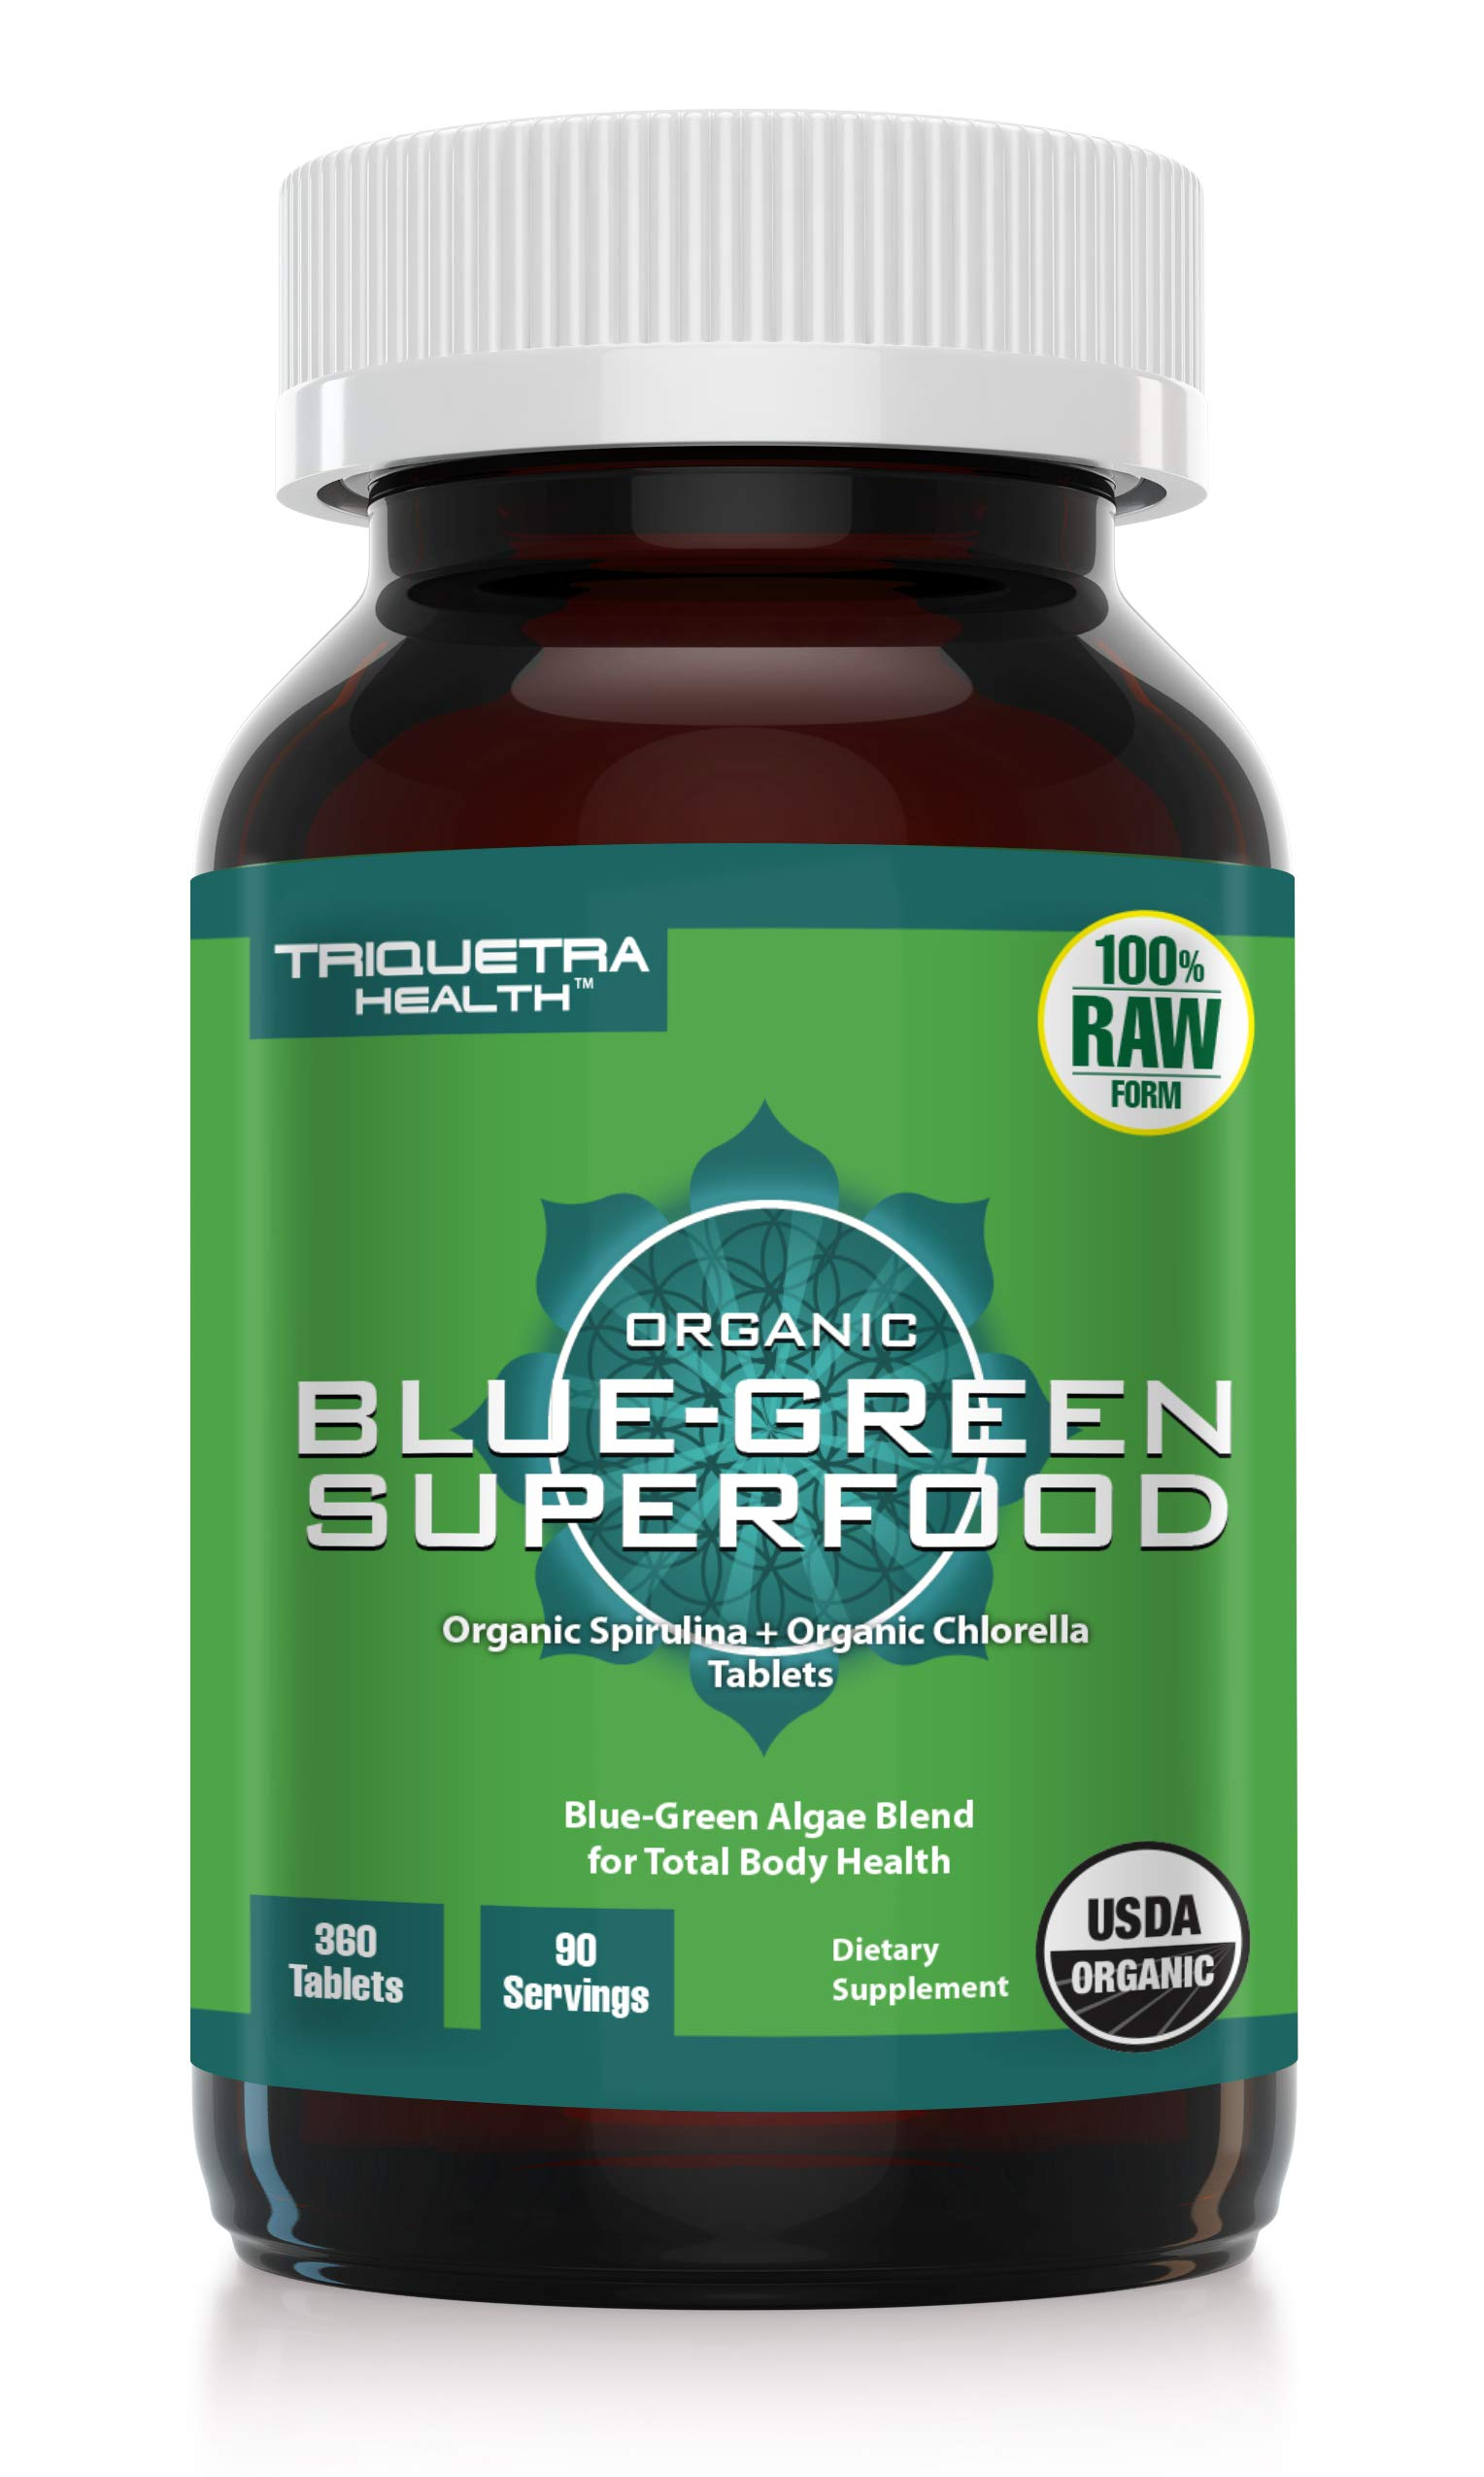 Organic Spirulina Chlorella: 360 Tablets - Raw & Bio-Active, 4 Organic Certifications, Vegan | Green Superfood Blend for Total Body Health, Rich in Chlorophyll, Vitamins, Minerals & Antioxidants